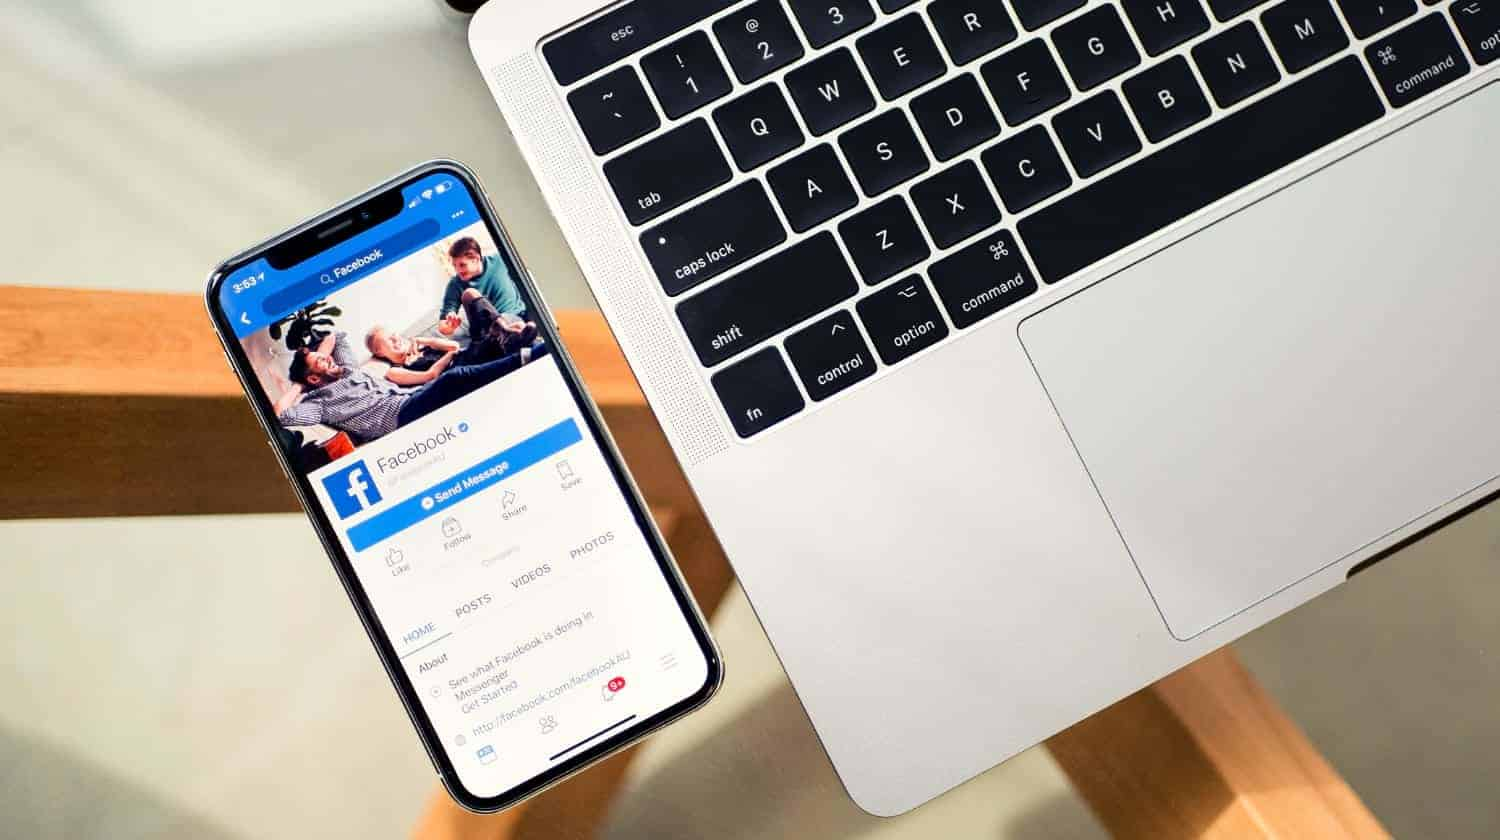 Featured | Facebook in smartphone with laptop | How To Change A Name On Facebook | Step By Step